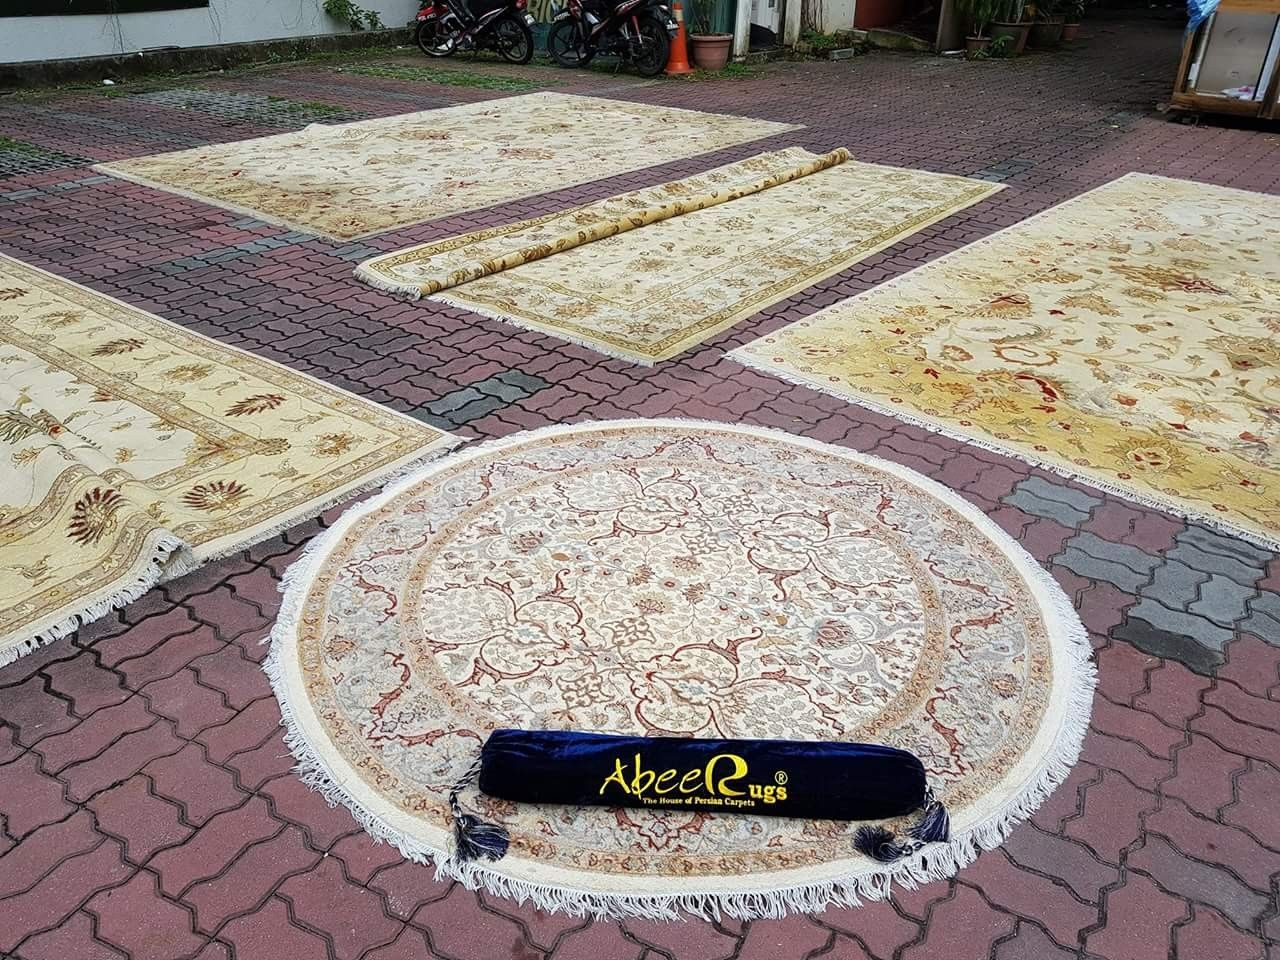 After wash Carpets drying under natural sunlight. Abee